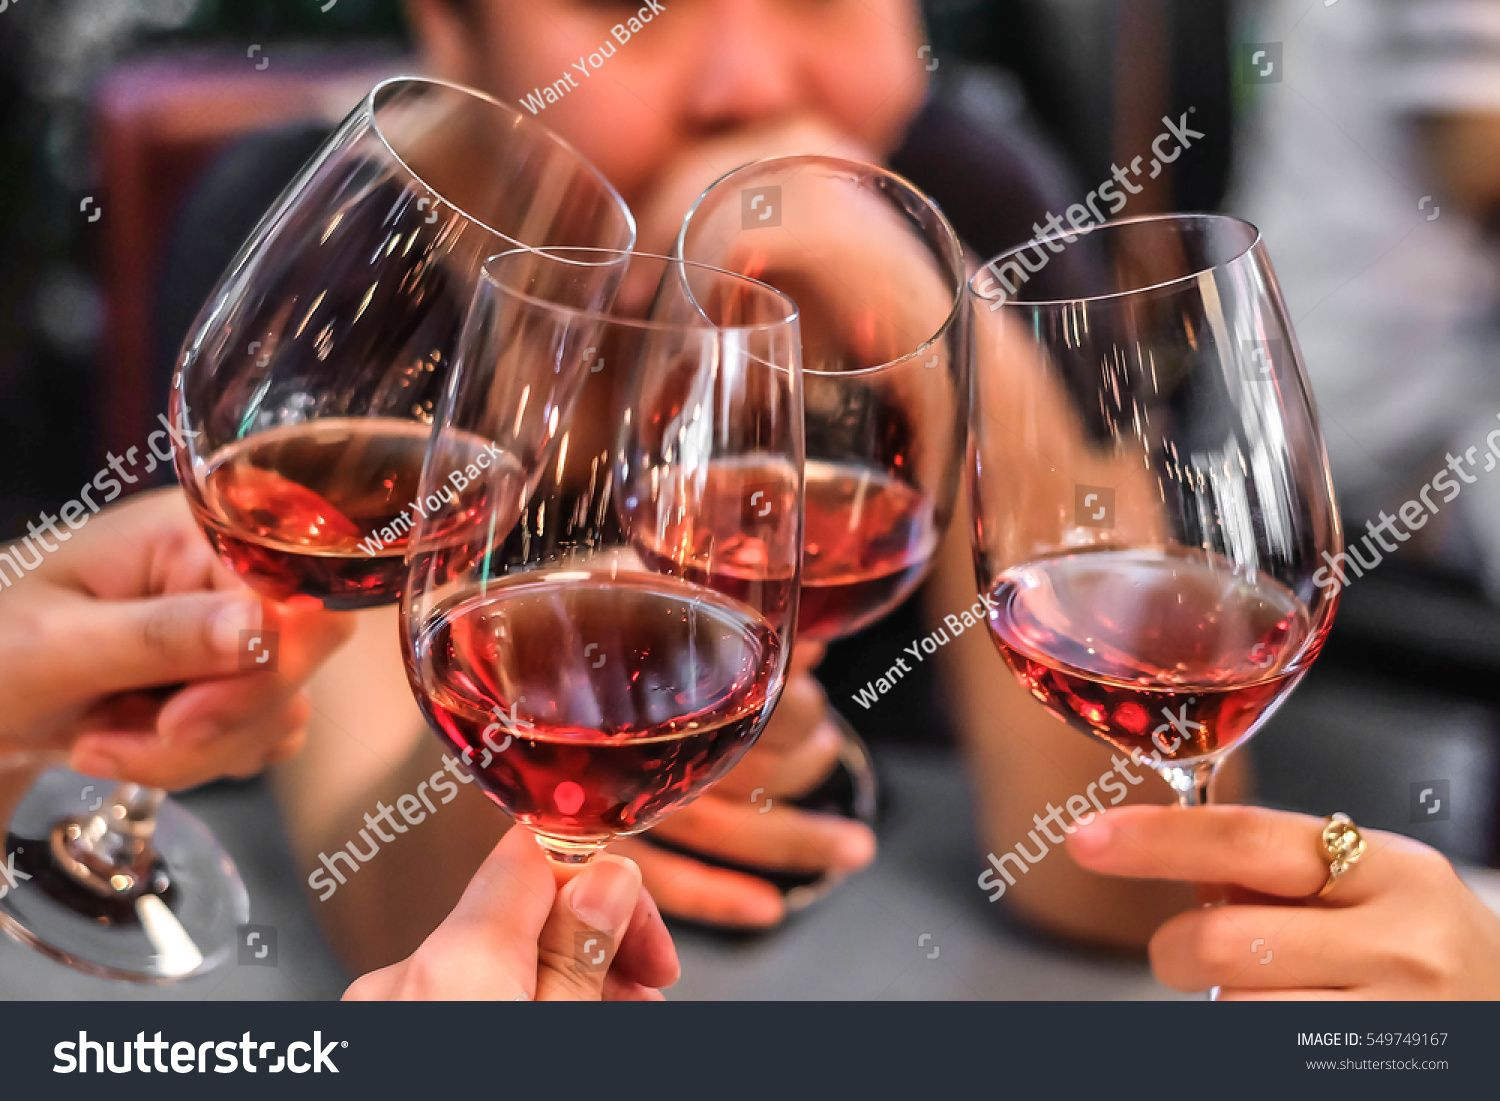 People Drink Wine Enjoy To Night Business People Party Celebration Success Concept Ad Affiliate Enjoy Night Wine In 2020 Wine Drinks Business Stock Photos Wine